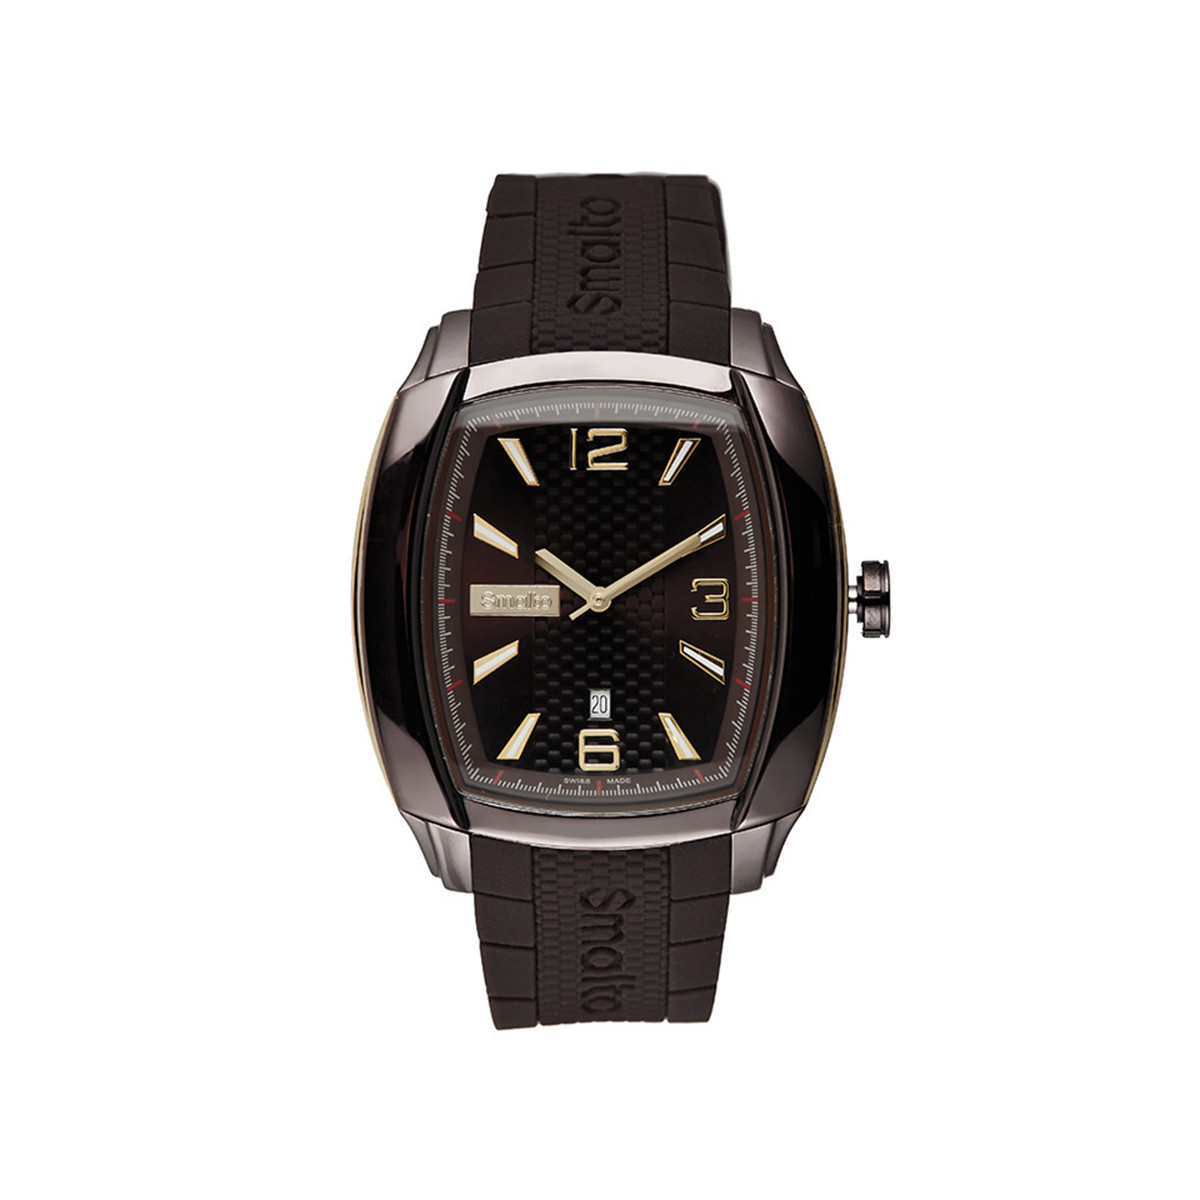 Montre Smalto Homme GR-2 - SNMG86C5BS2